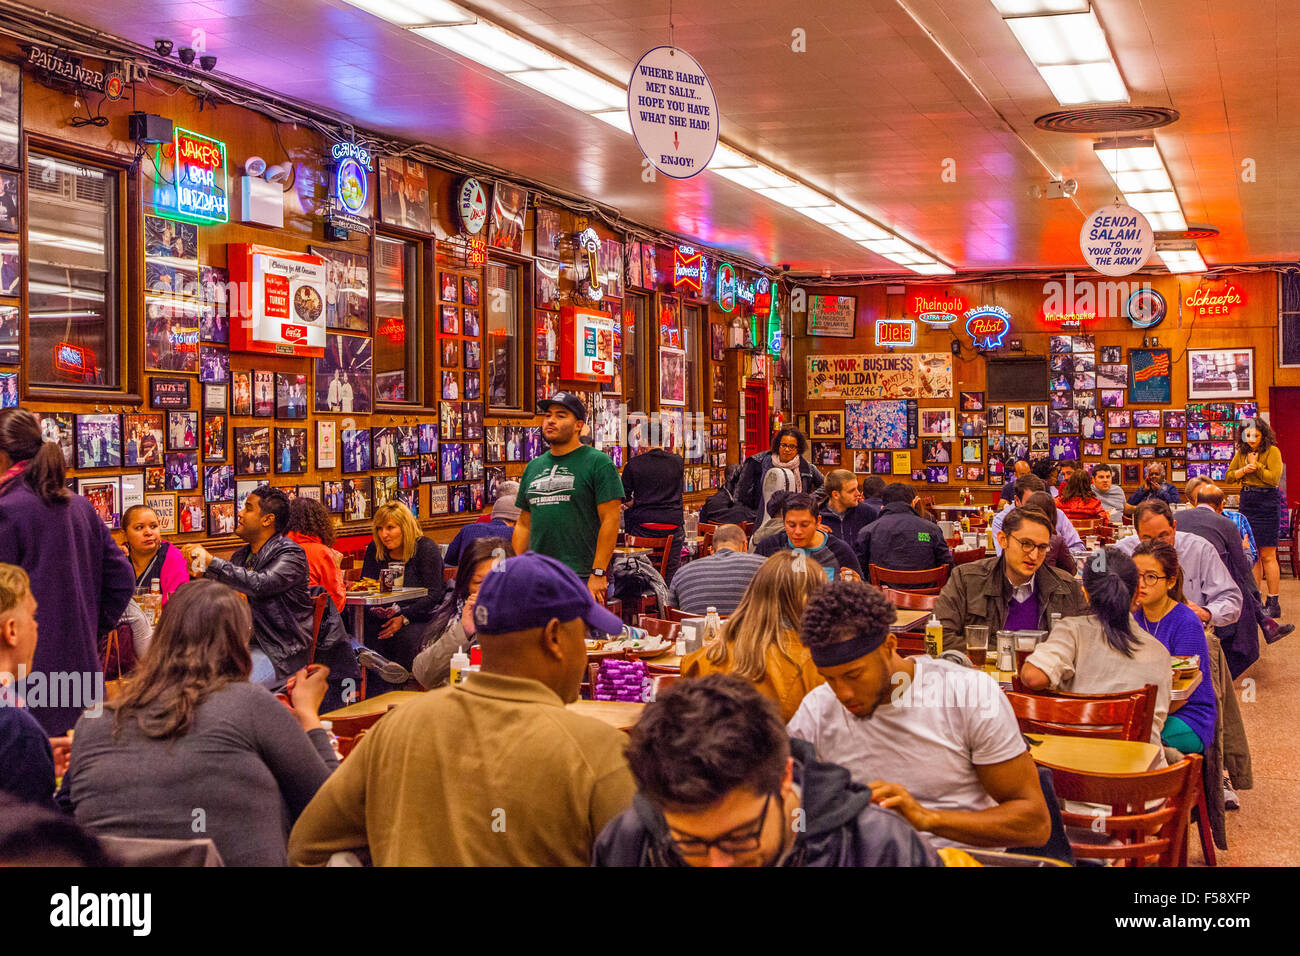 katz's deli, a delicatessen diner on the lower east side, new york